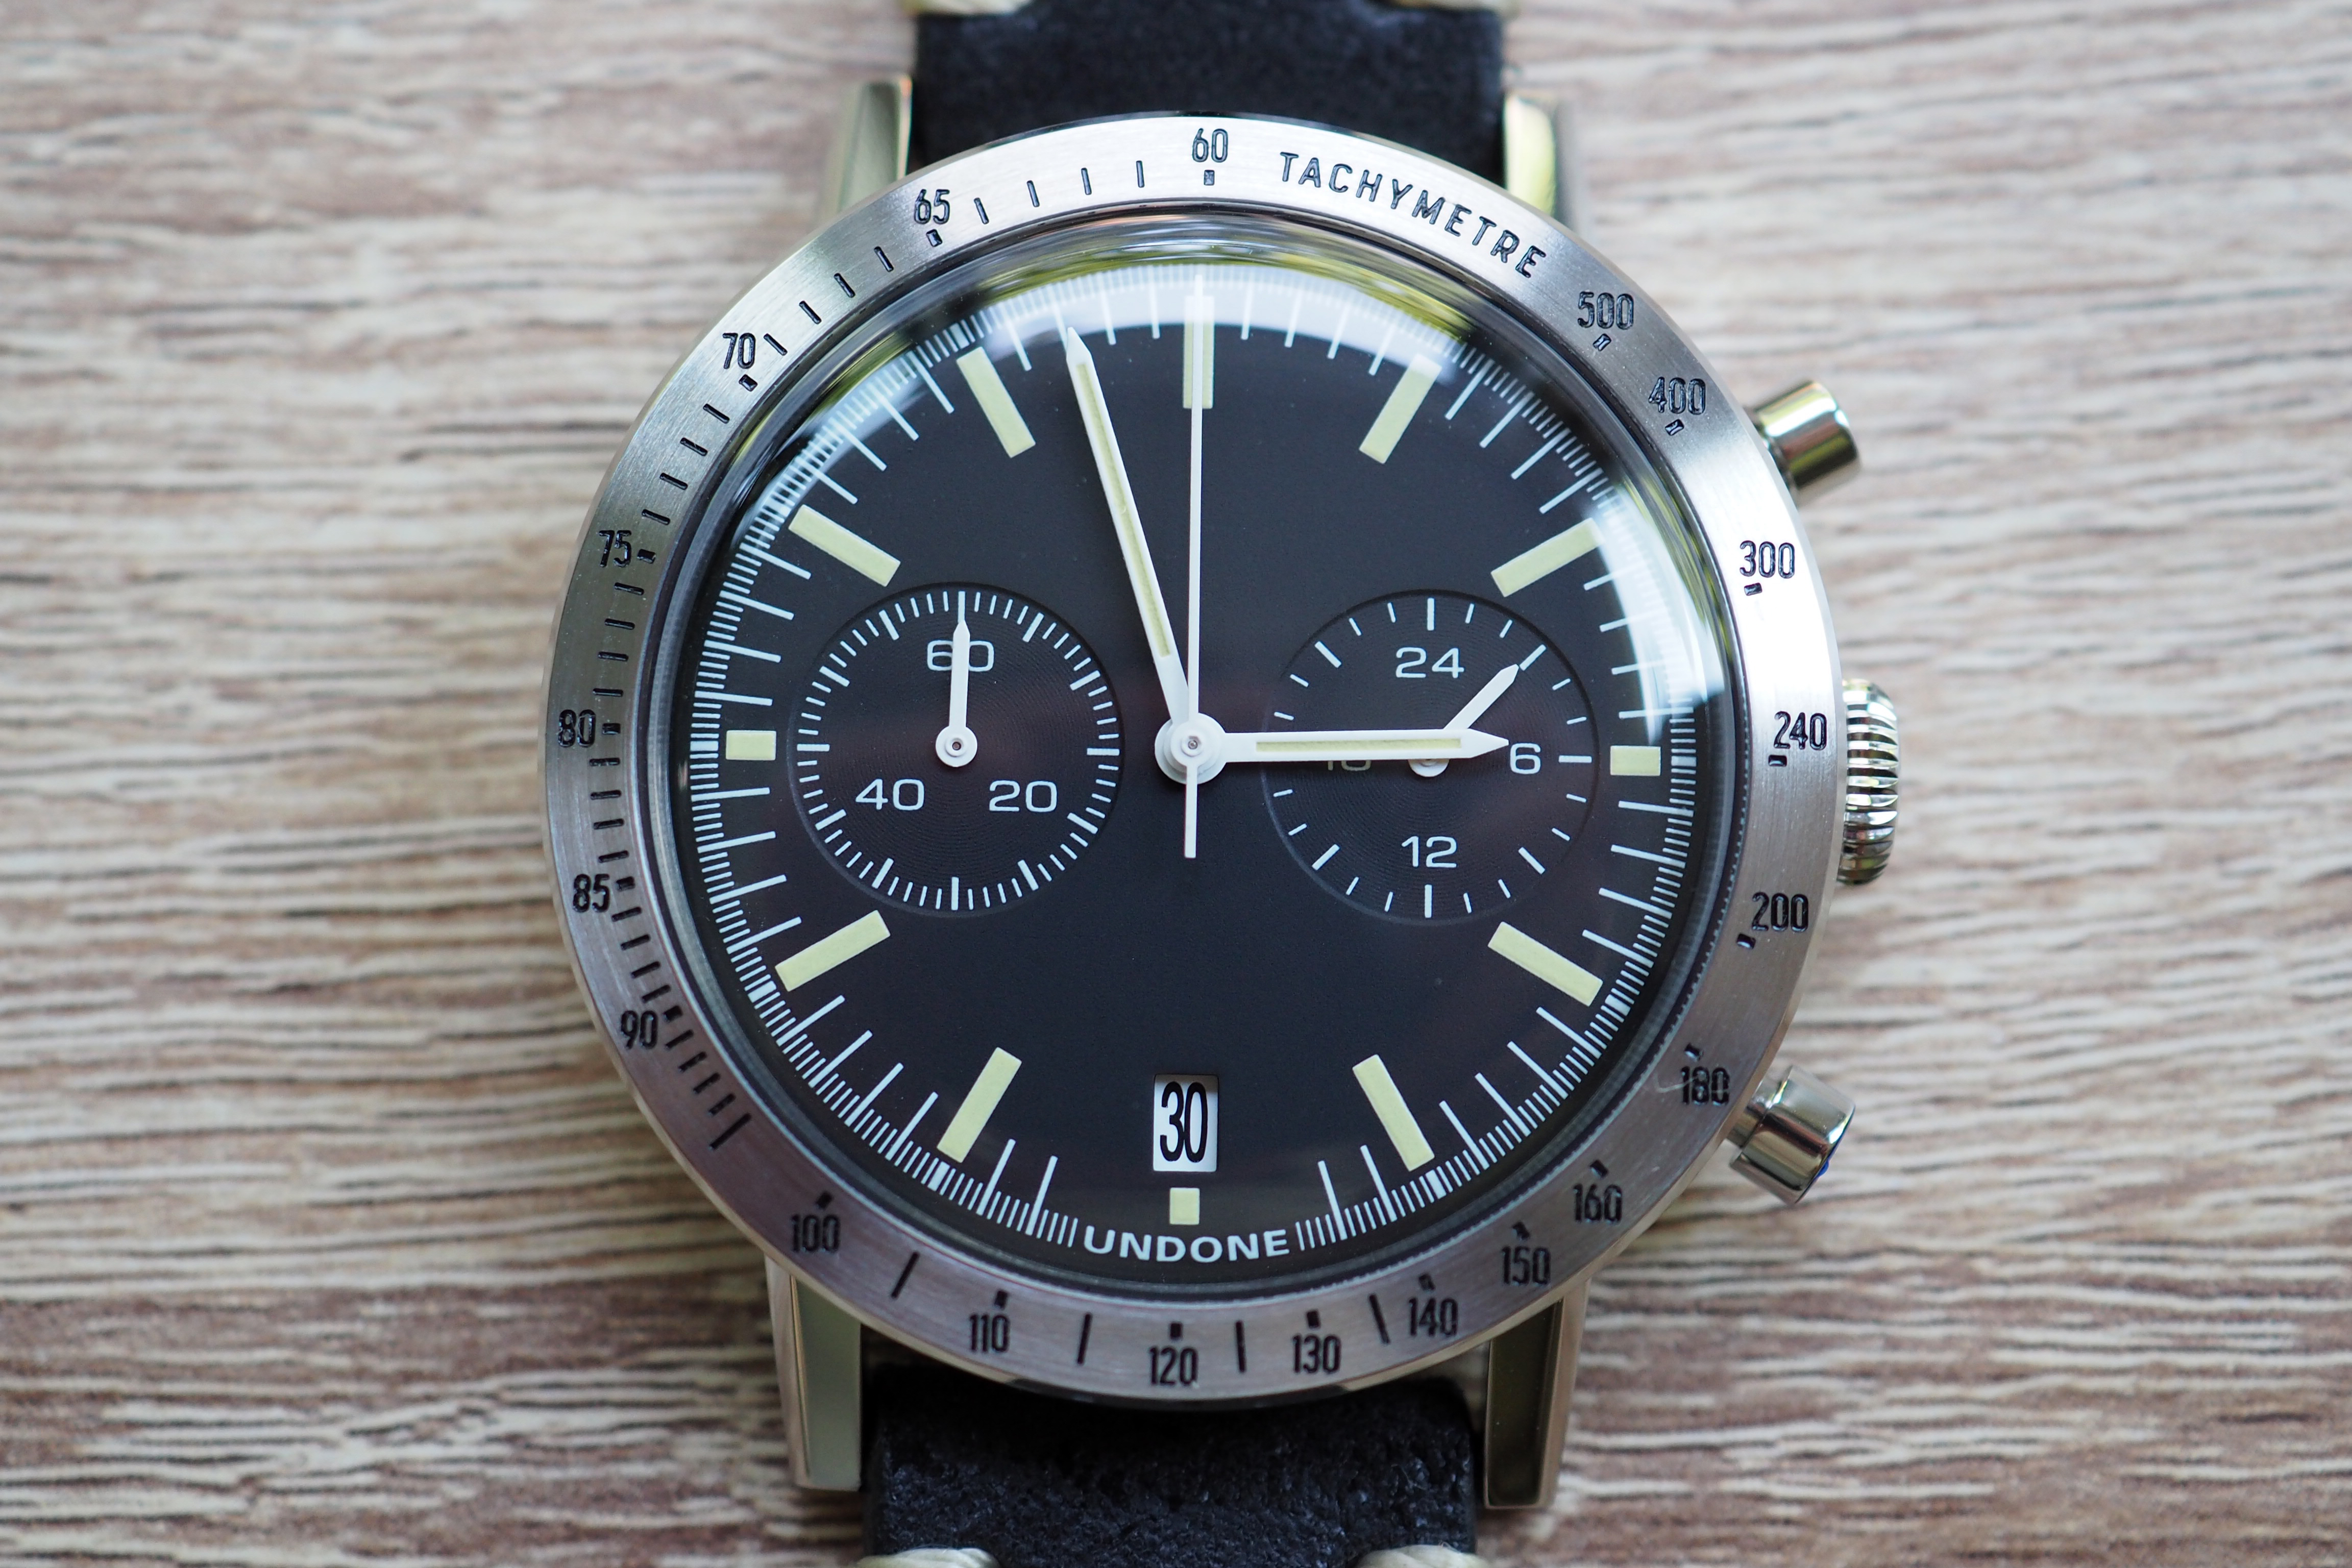 Undone Tropical Amazon Watch Review